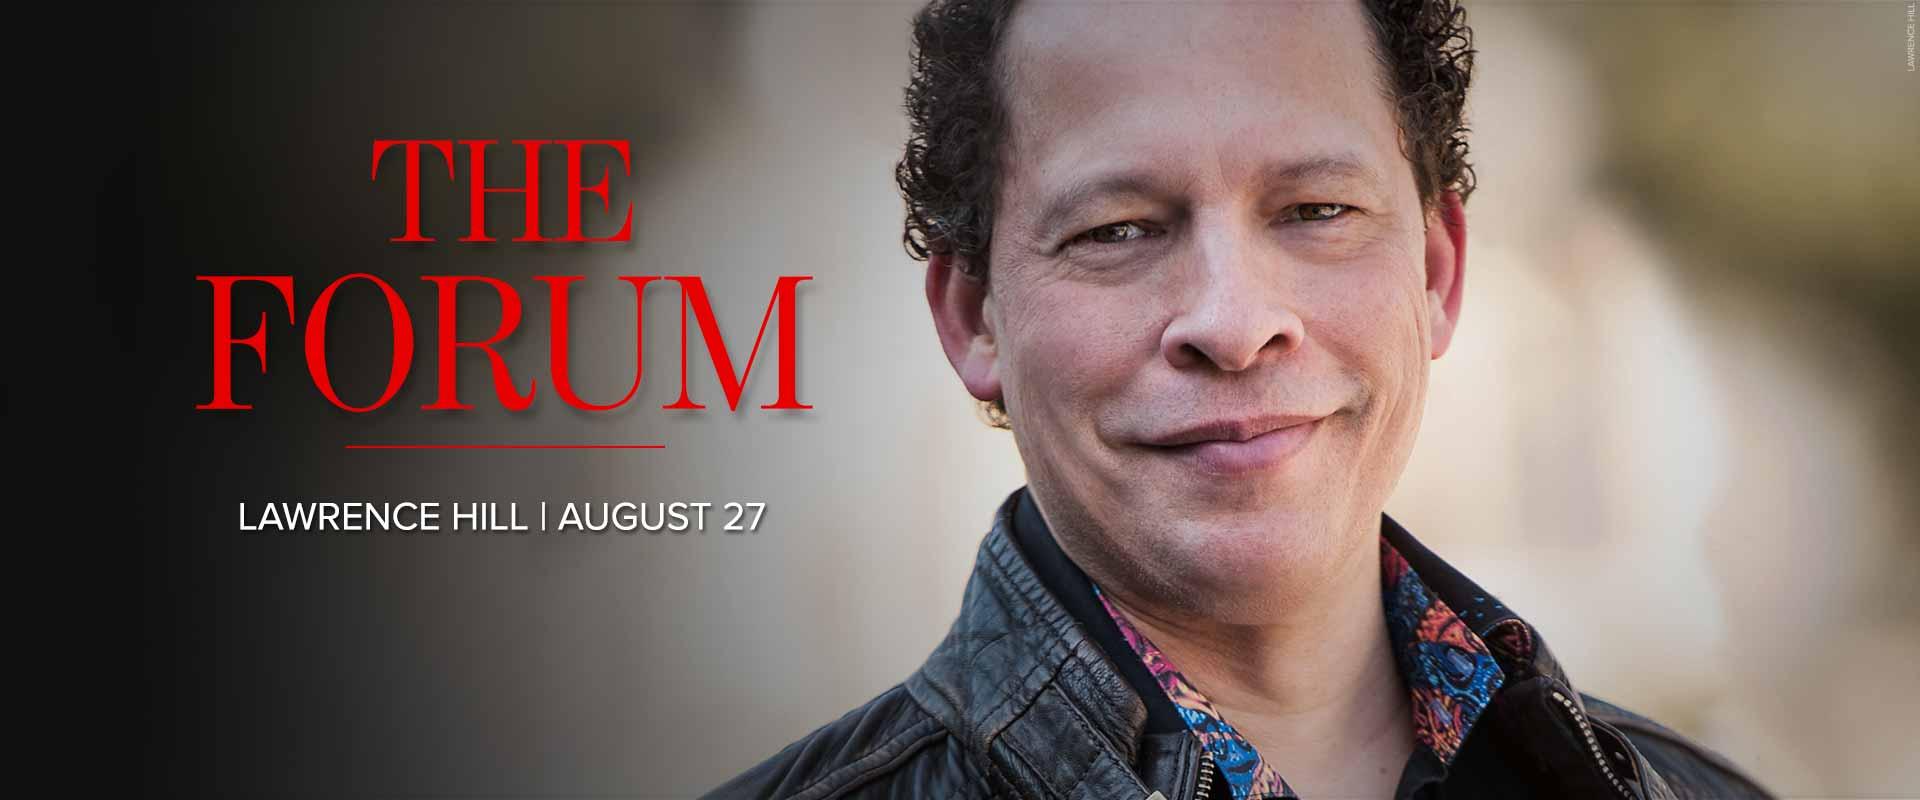 Forum image featuring Lawrence Hill